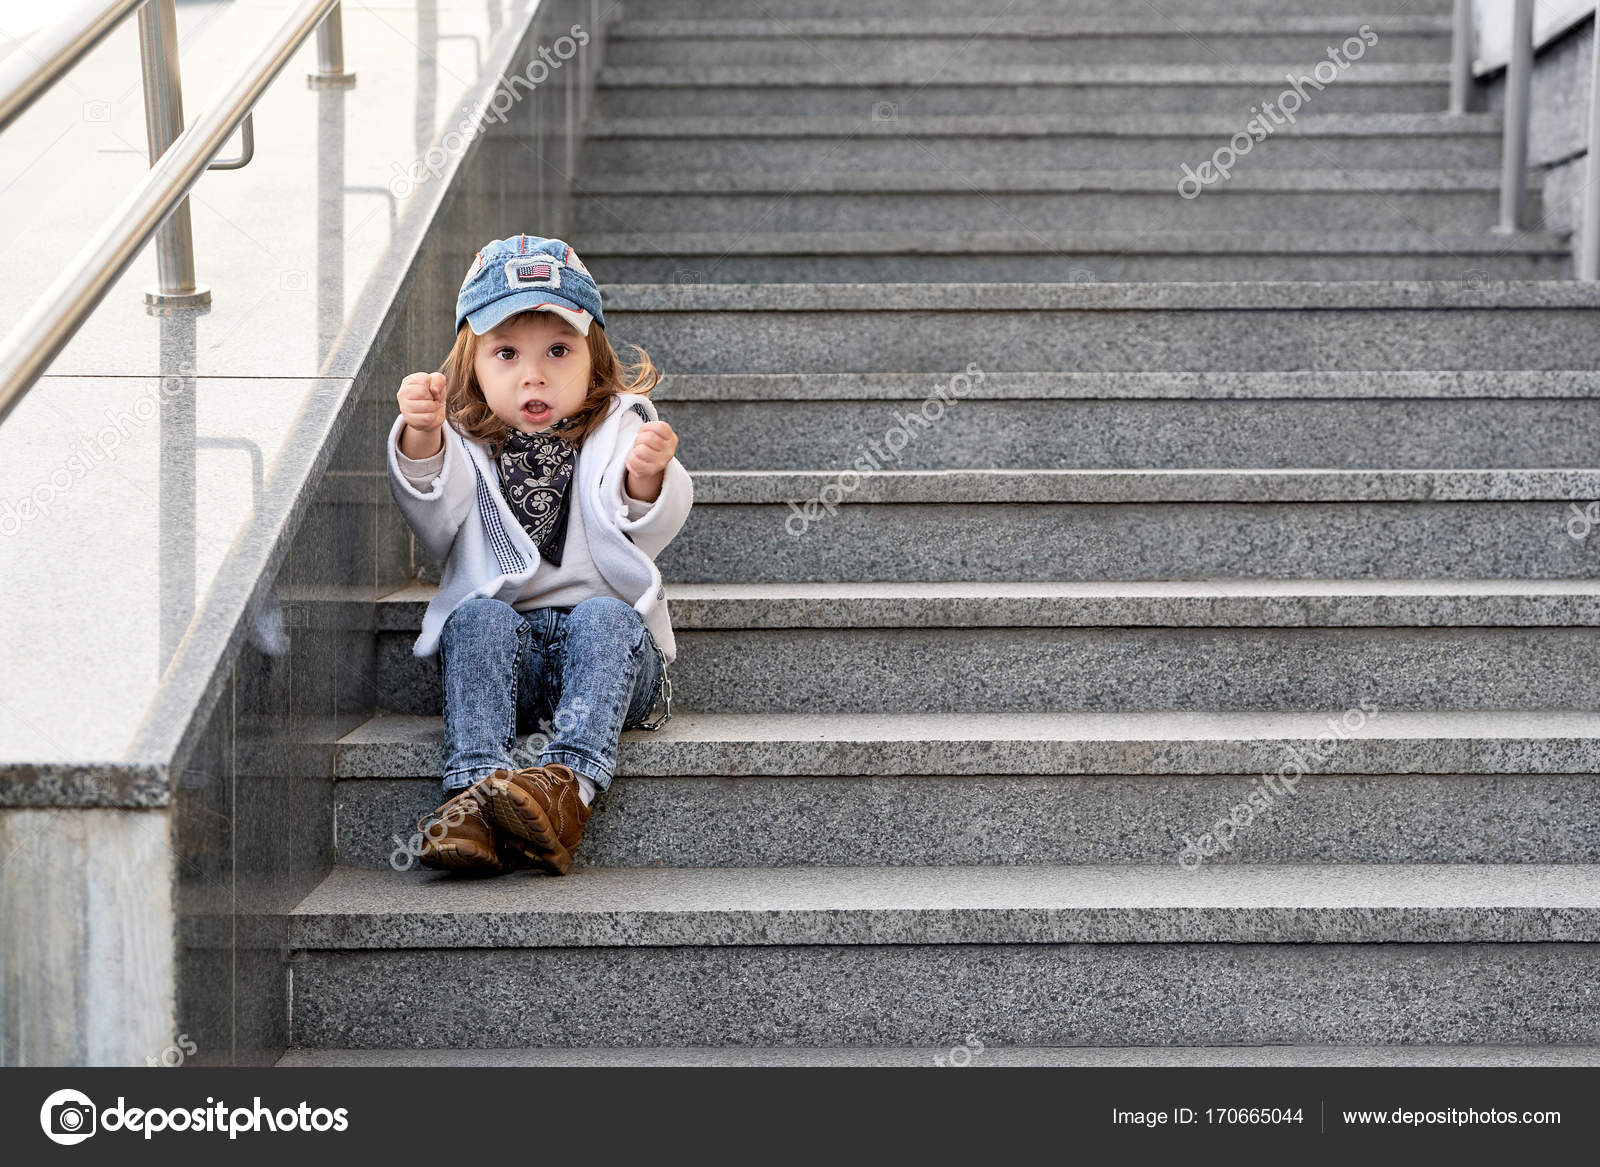 c5bc8bf6c model child hip-hop sitting on stairs outdoor.girl child street ...